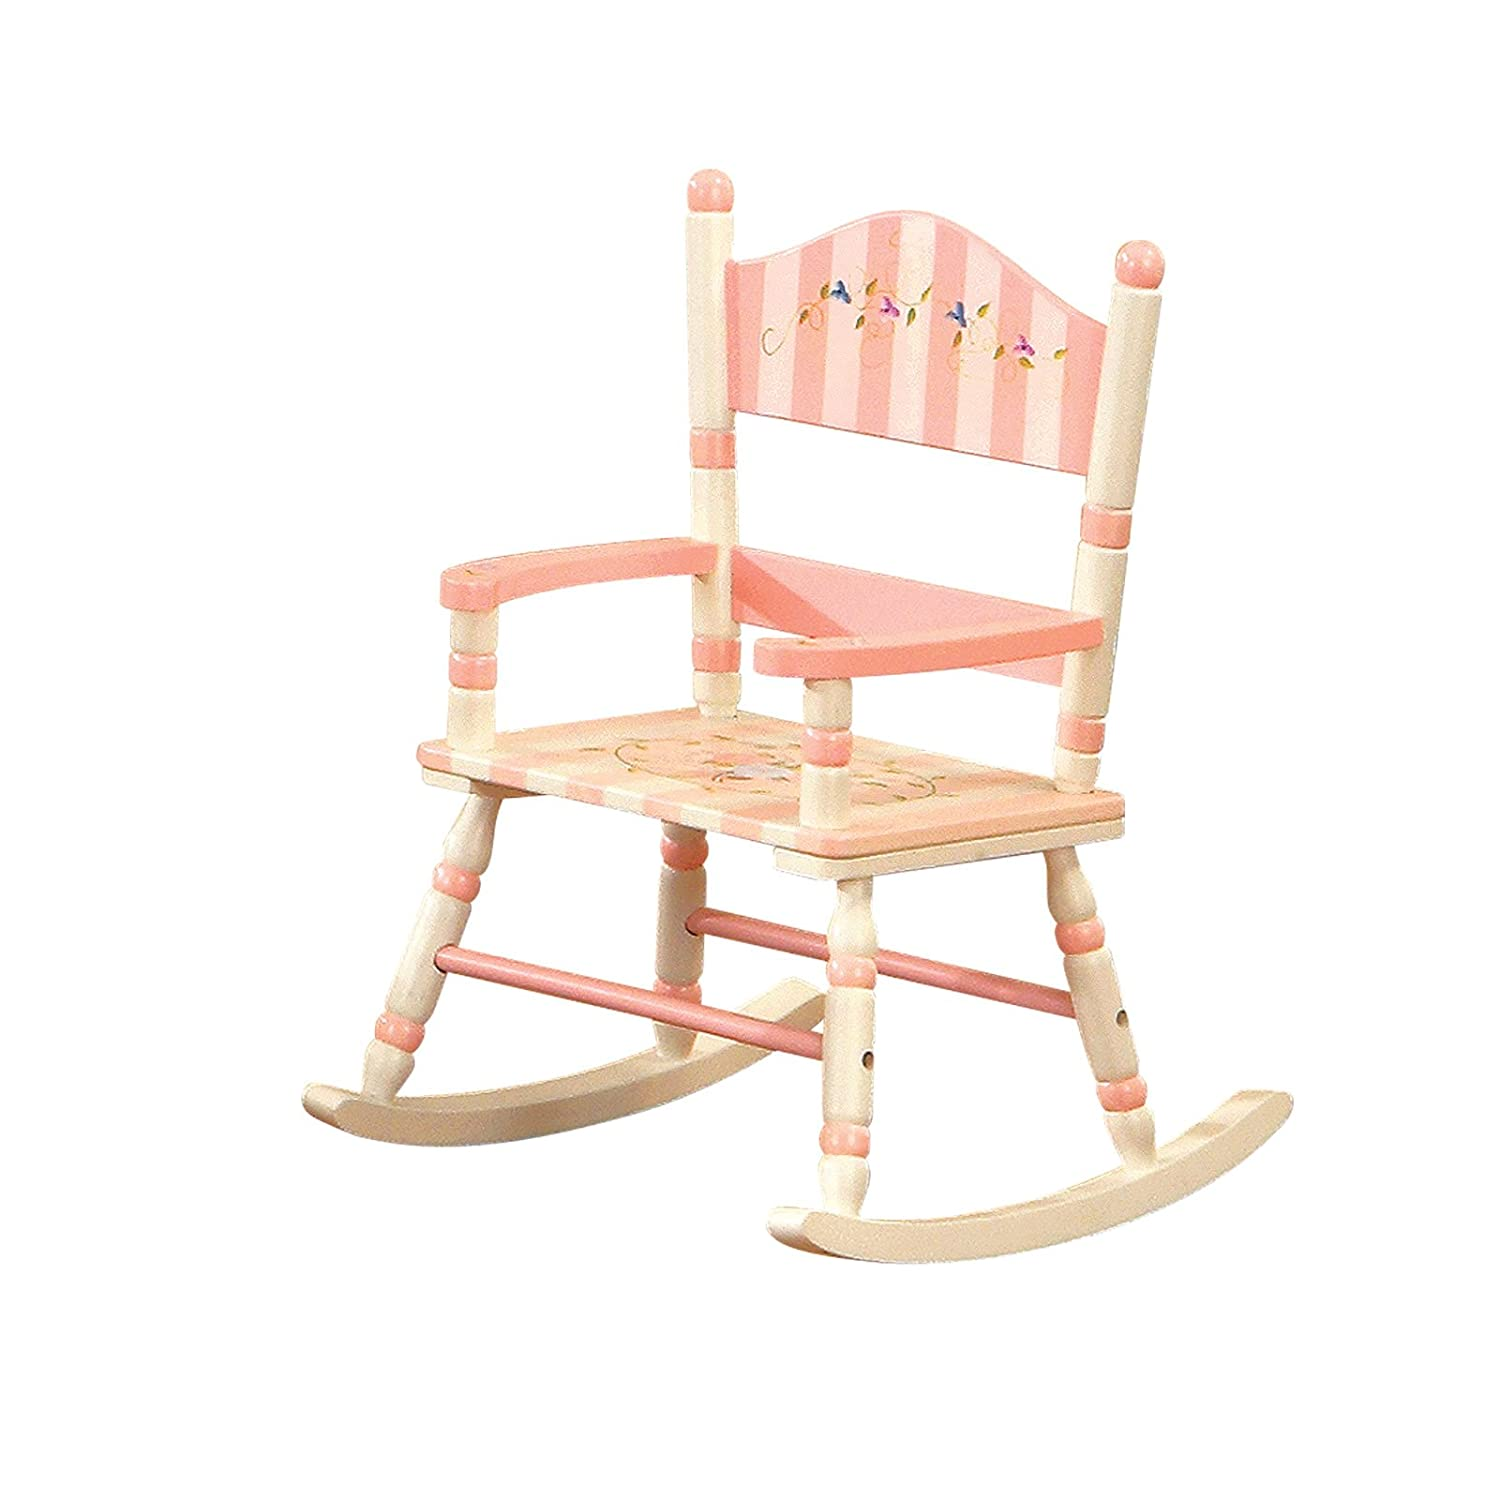 Toddler Rocker Chair Kids Wooden Rocking Chair Fel7